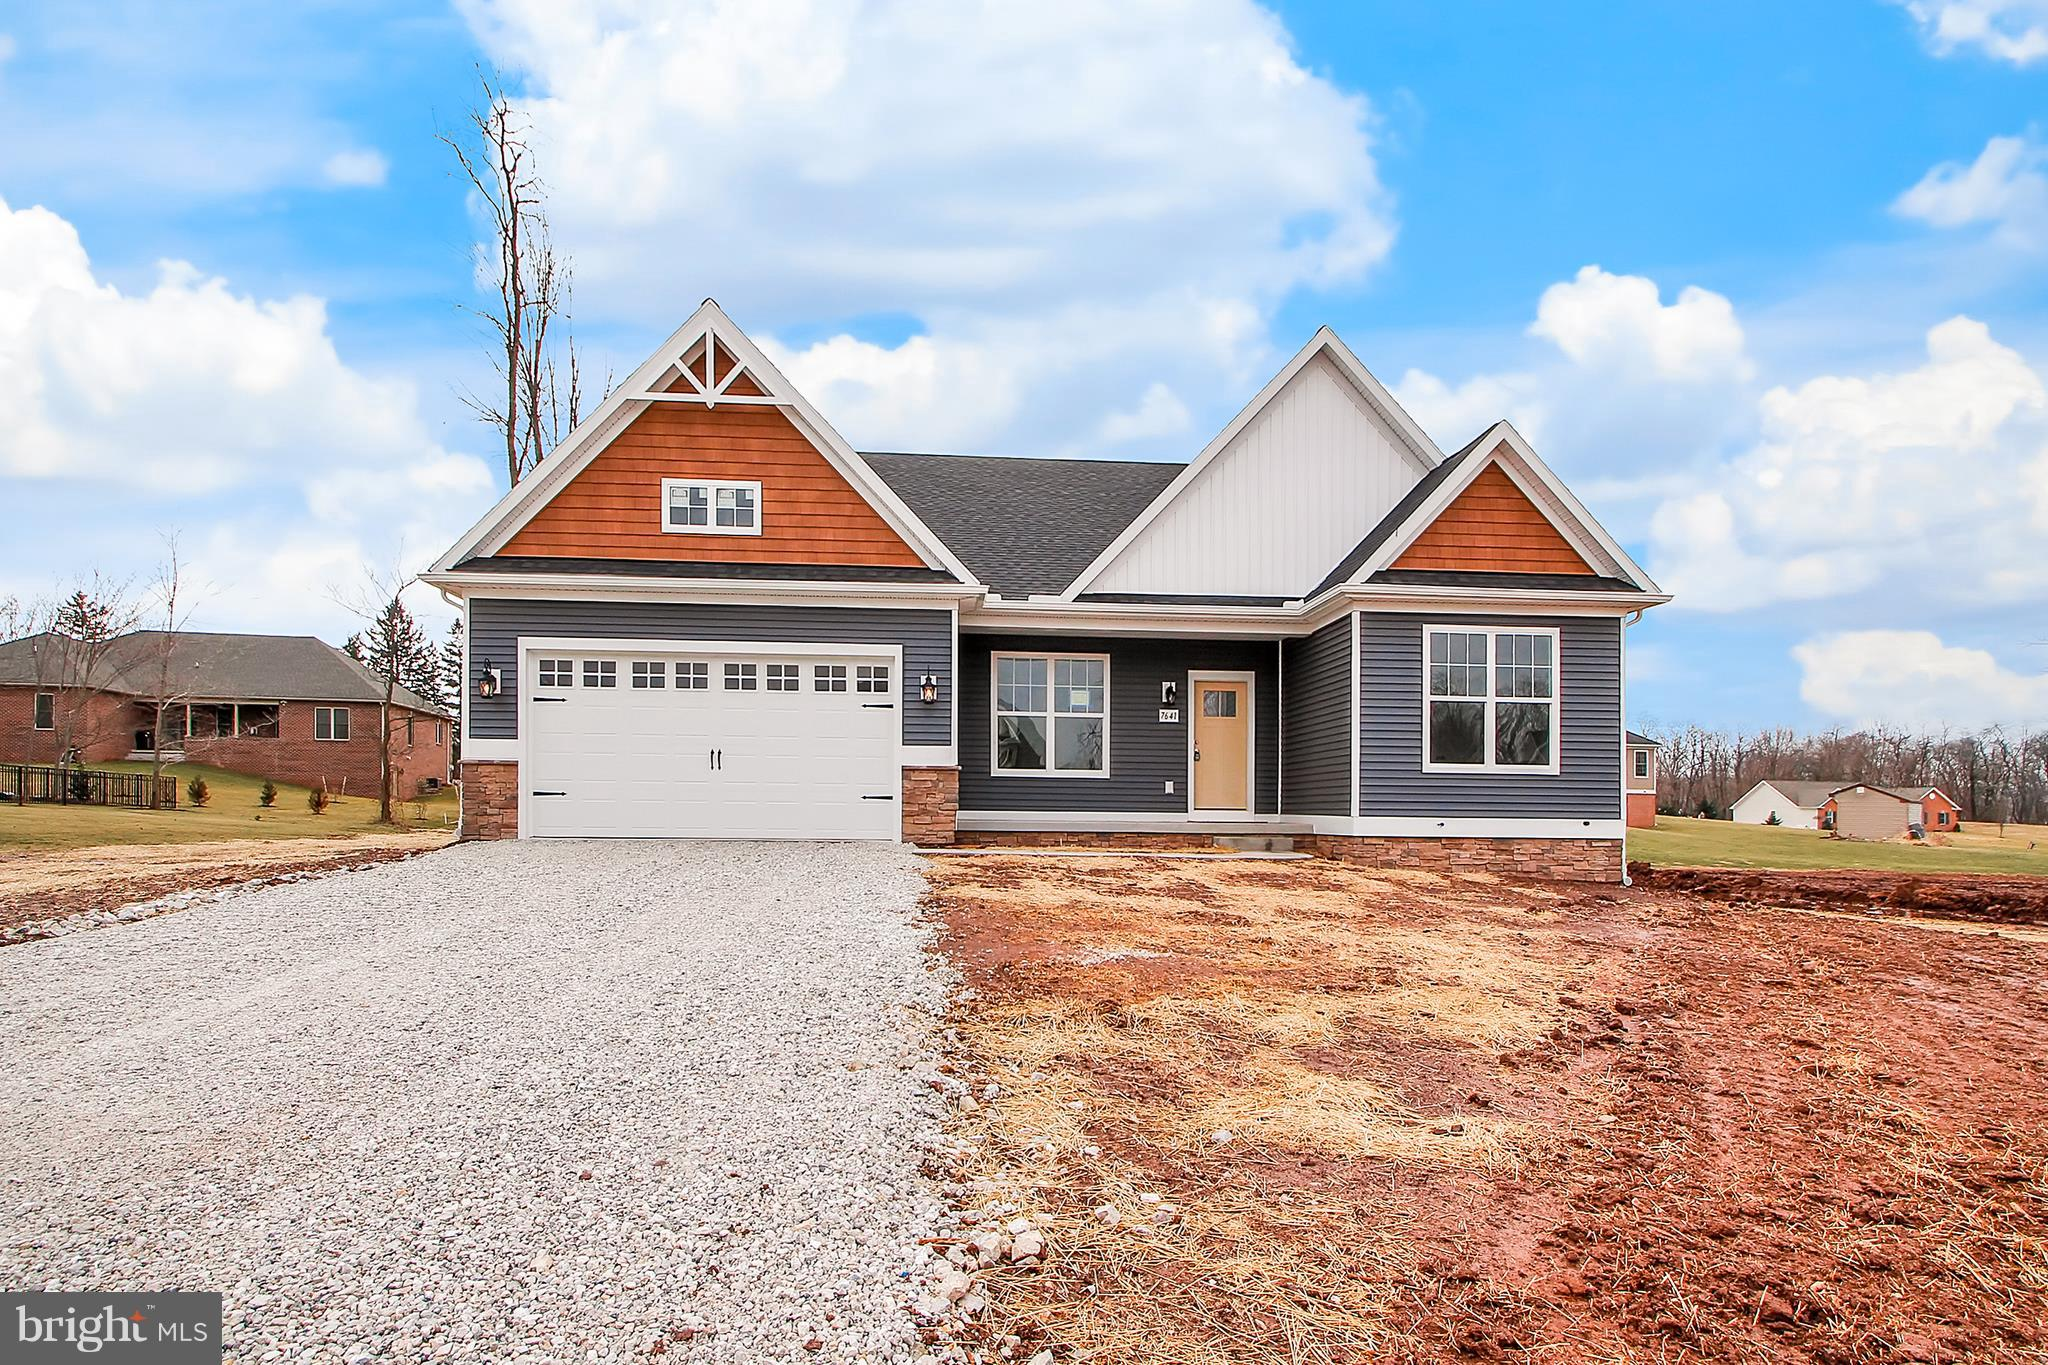 Lot #20 BLOOMING GROVE ROAD, GLENVILLE, PA 17329